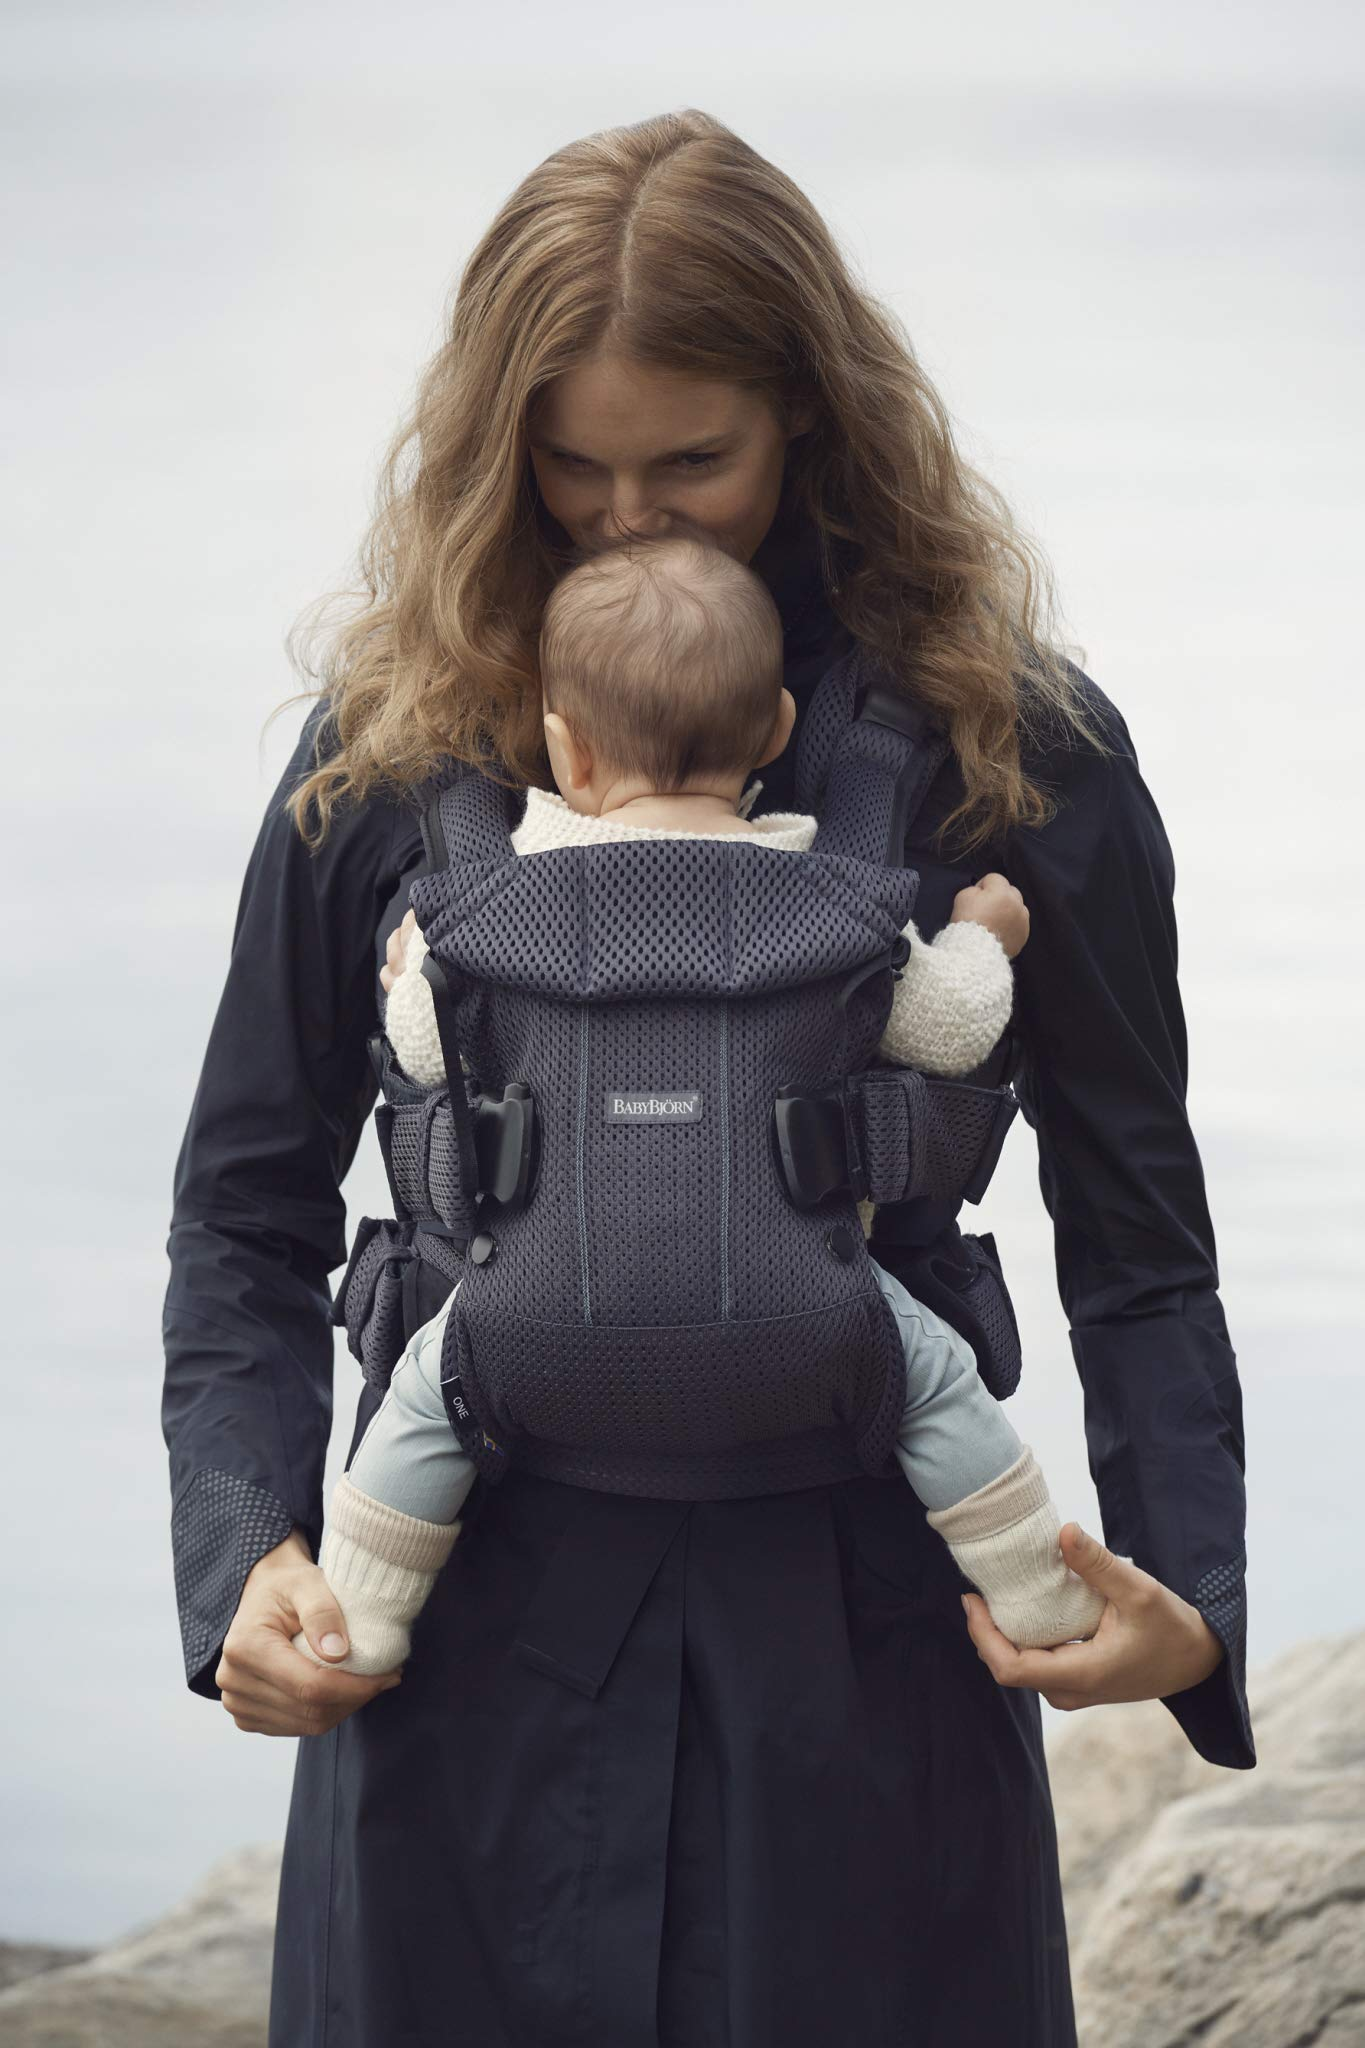 BABYBJÖRN Baby Carrier One Air, 3D Mesh, Anthracite, 2018 Edition Baby Bjorn The latest version (2018) with soft and breathable mesh that dries quickly Ergonomic baby carrier with excellent support 4 carrying positions: facing in (two height positions), facing out or on your back 7